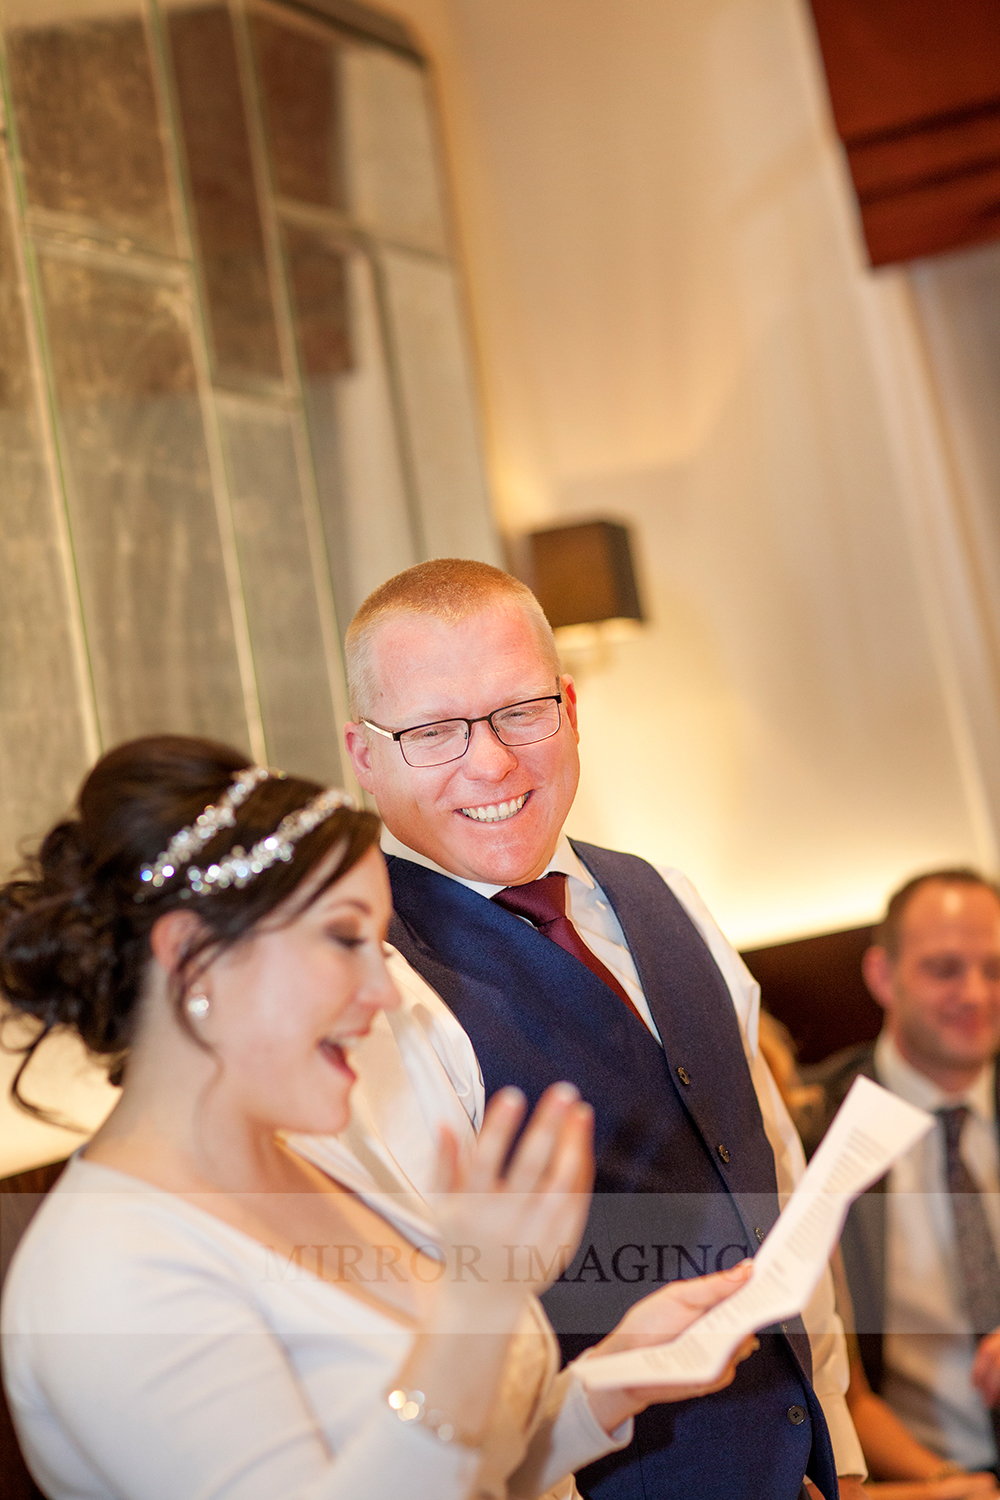 nottingham wedding photographers 56.jpg